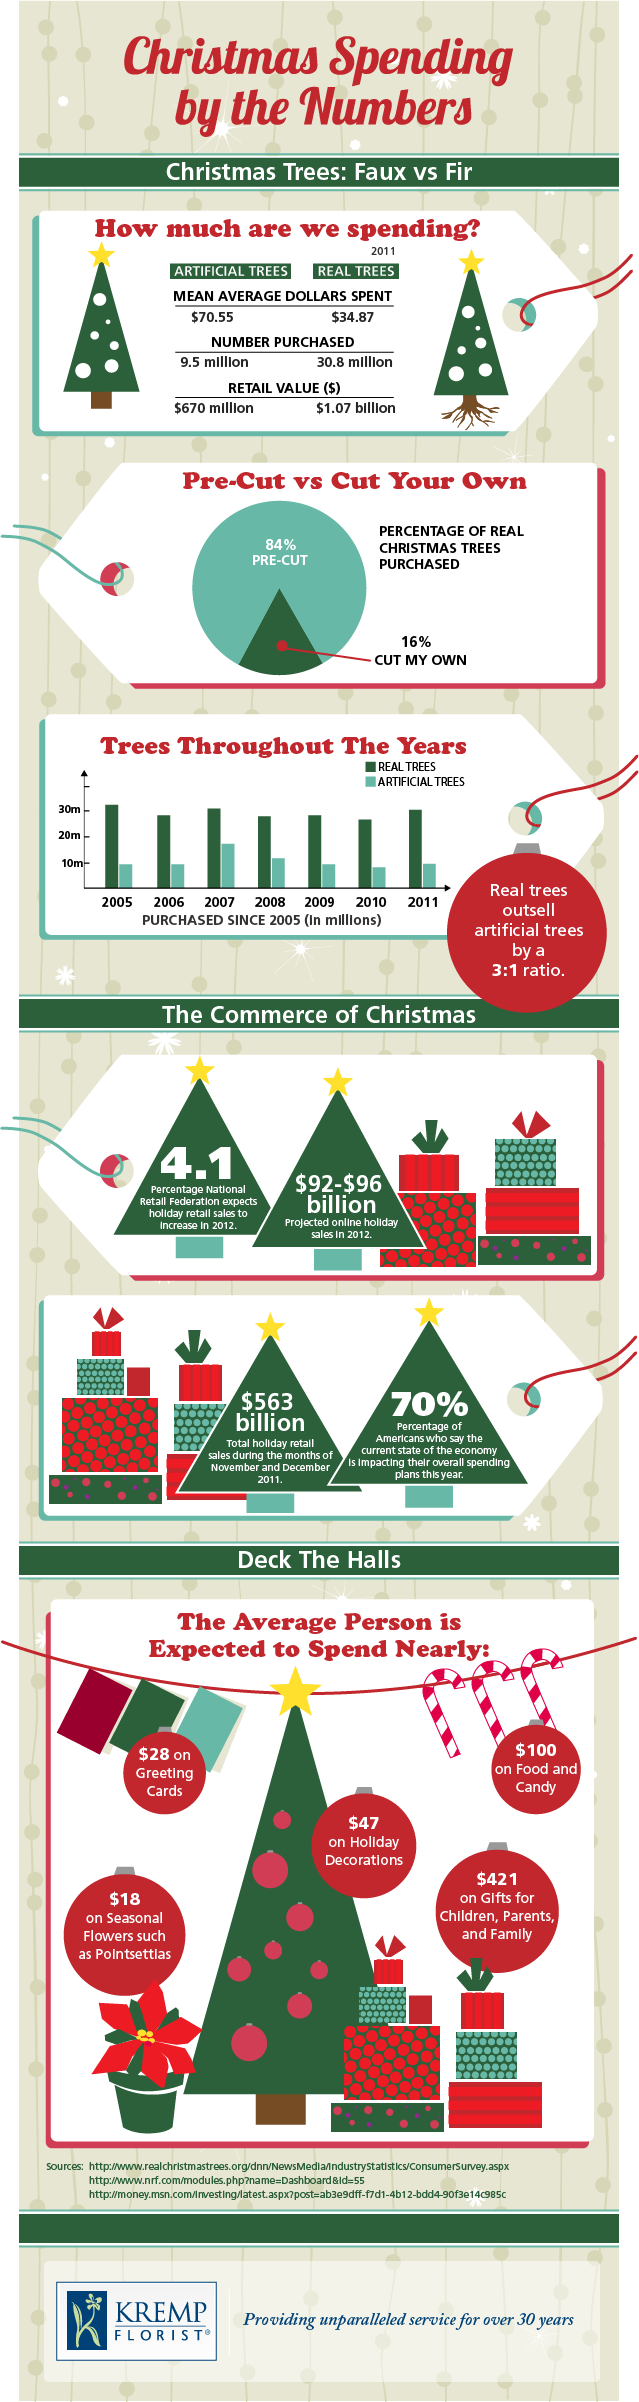 Christmas Spending by the Numbers | Visual.ly